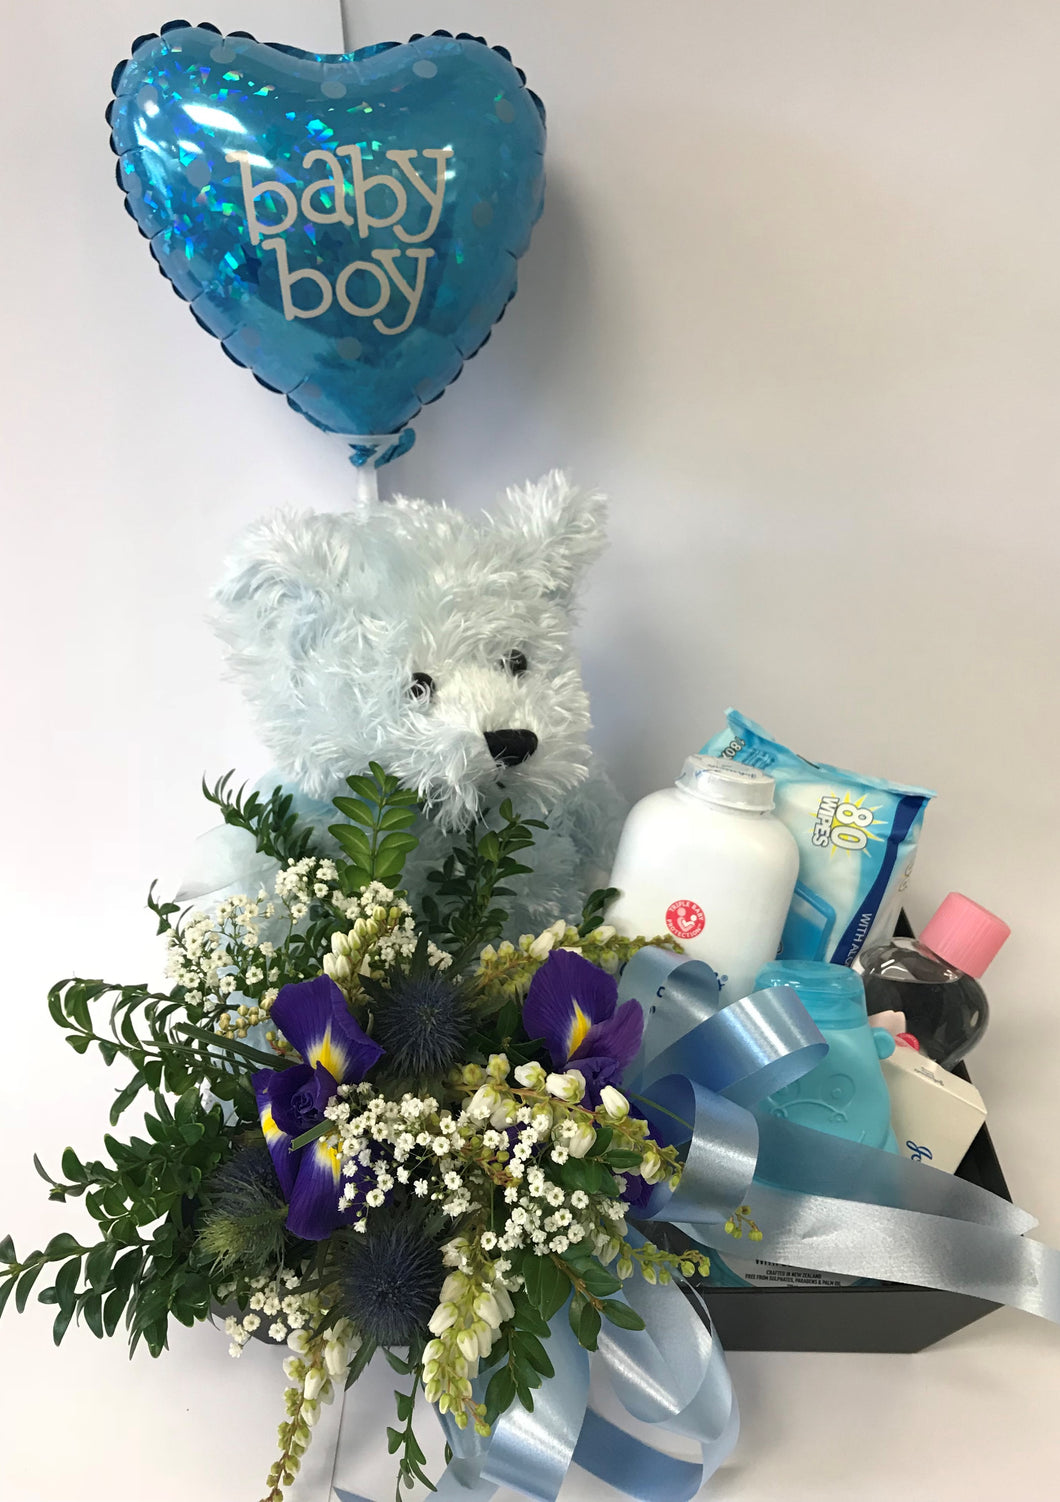 Gift box for baby boy